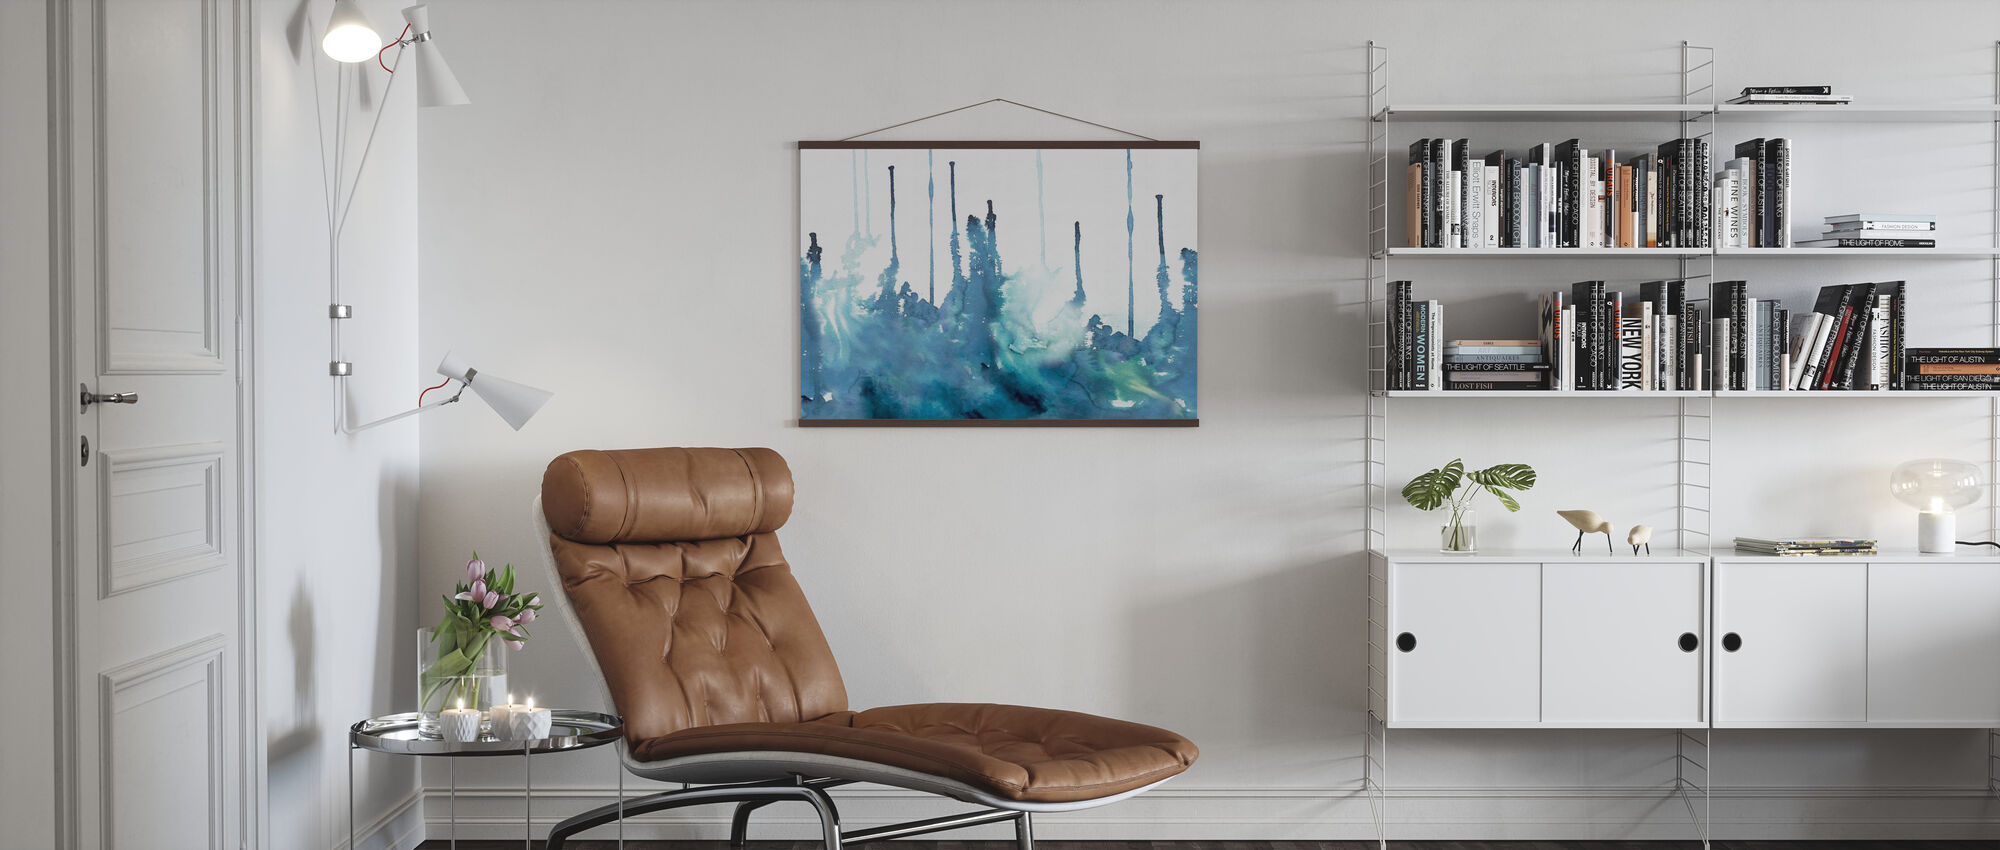 Watercolor Study - Azure - Poster - Living Room